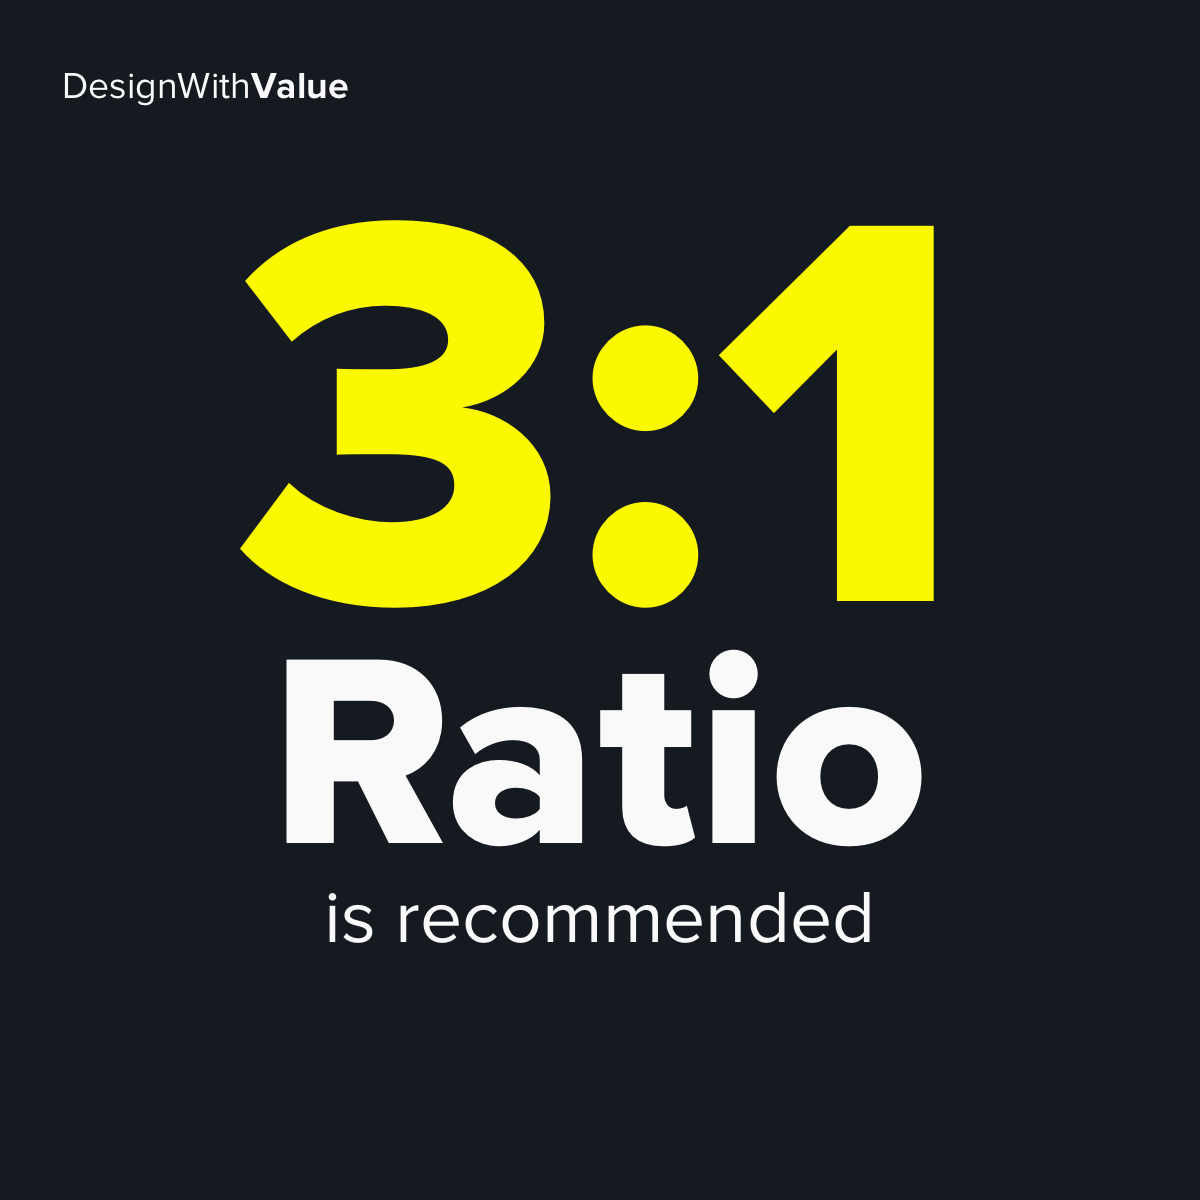 3:1 ratio is recommended.